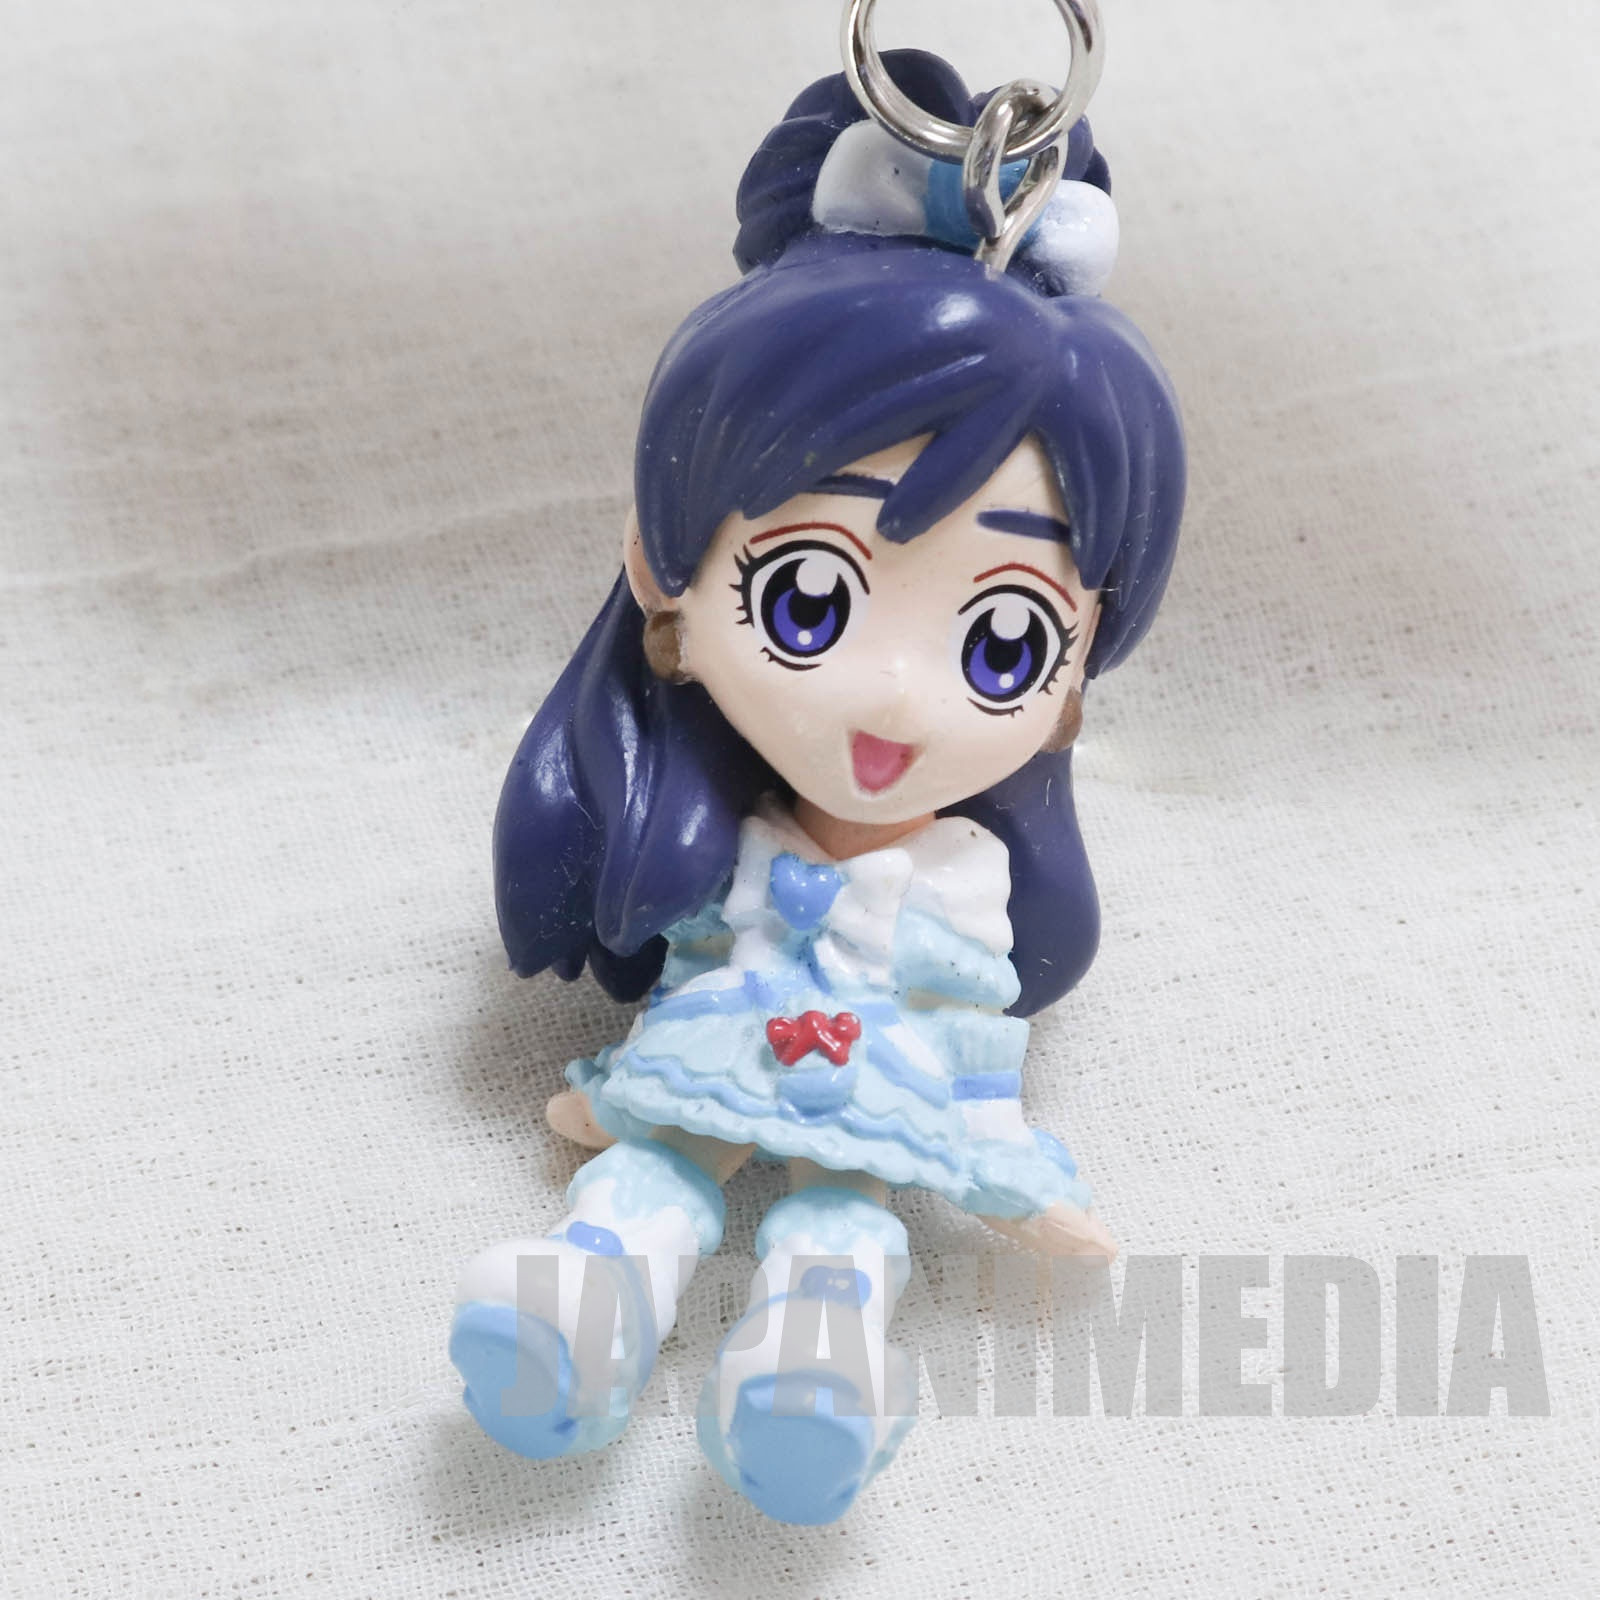 Futari wa Pretty Cure Max Heart Cure White Figure Keychain with Ribbon JAPAN